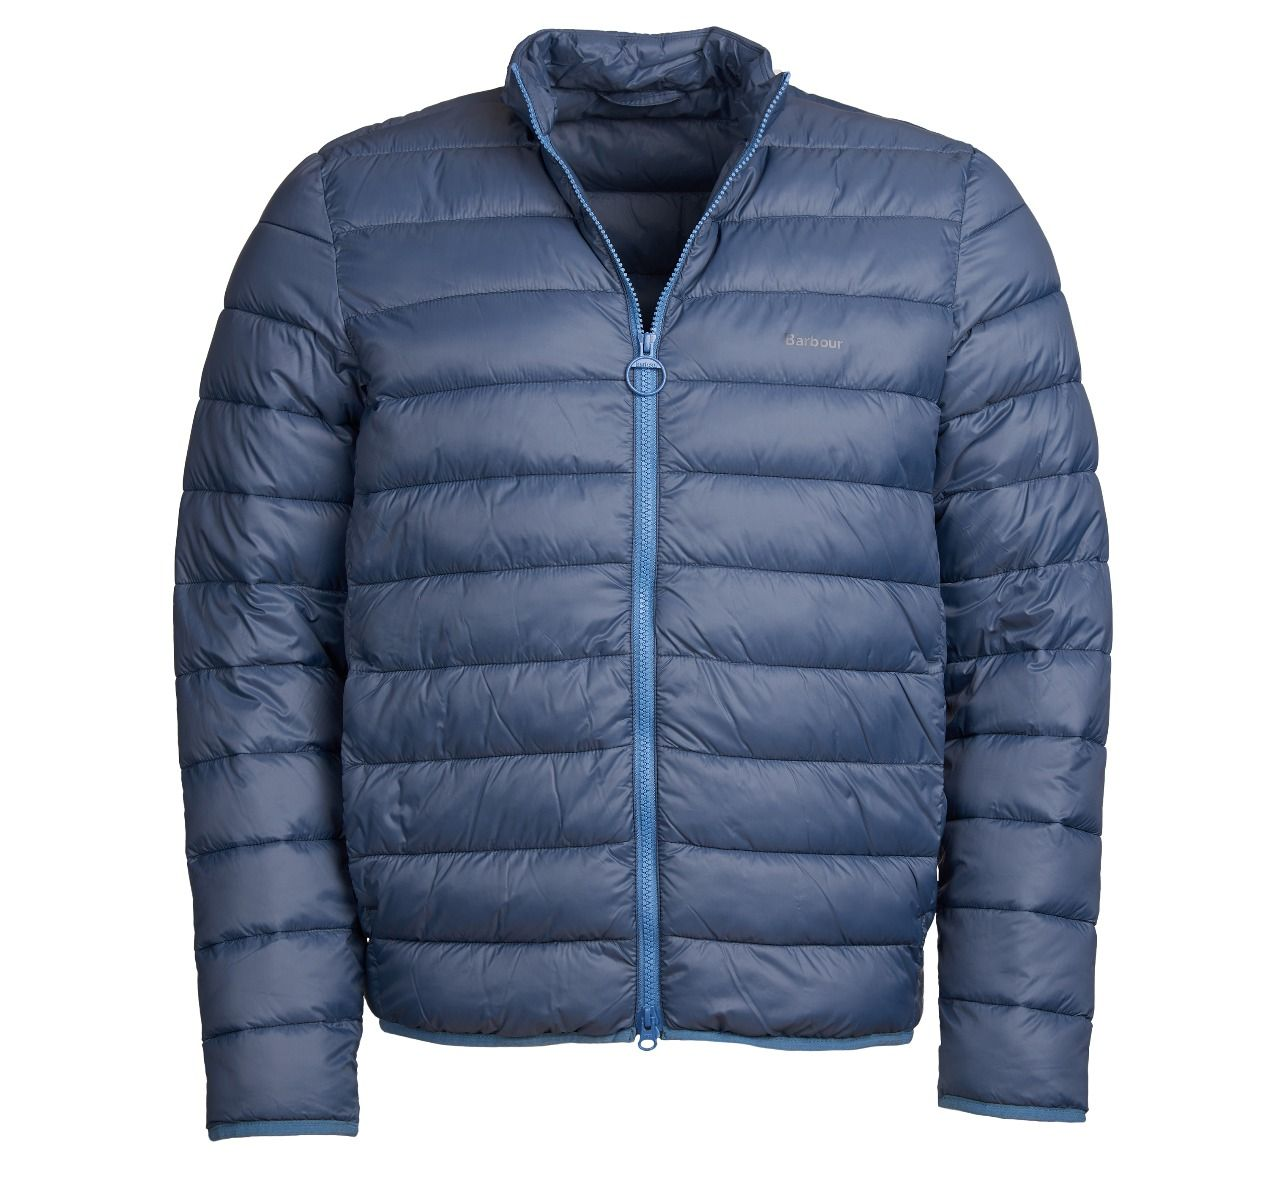 Barbour Penton Quilt Moody Blue Barbour Lifestyle Collection: Regular Fit